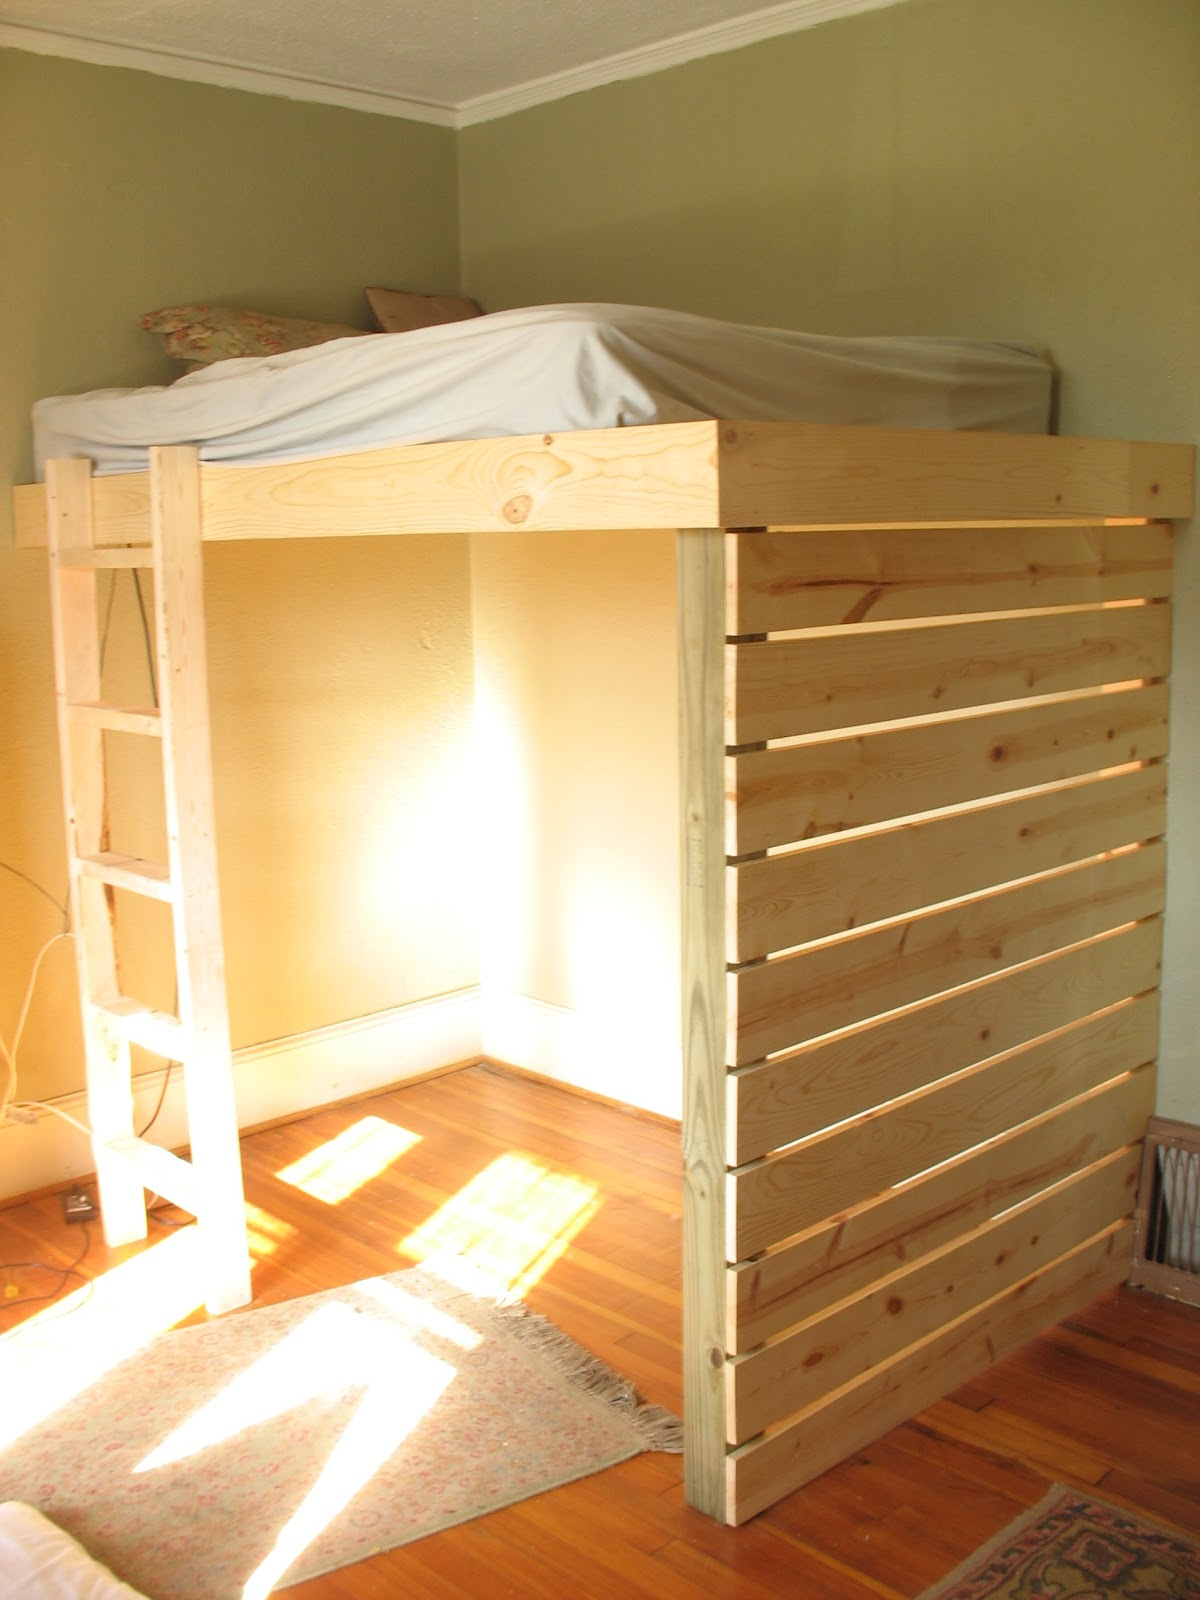 Micmac interiors loft bed for Simple bed diy